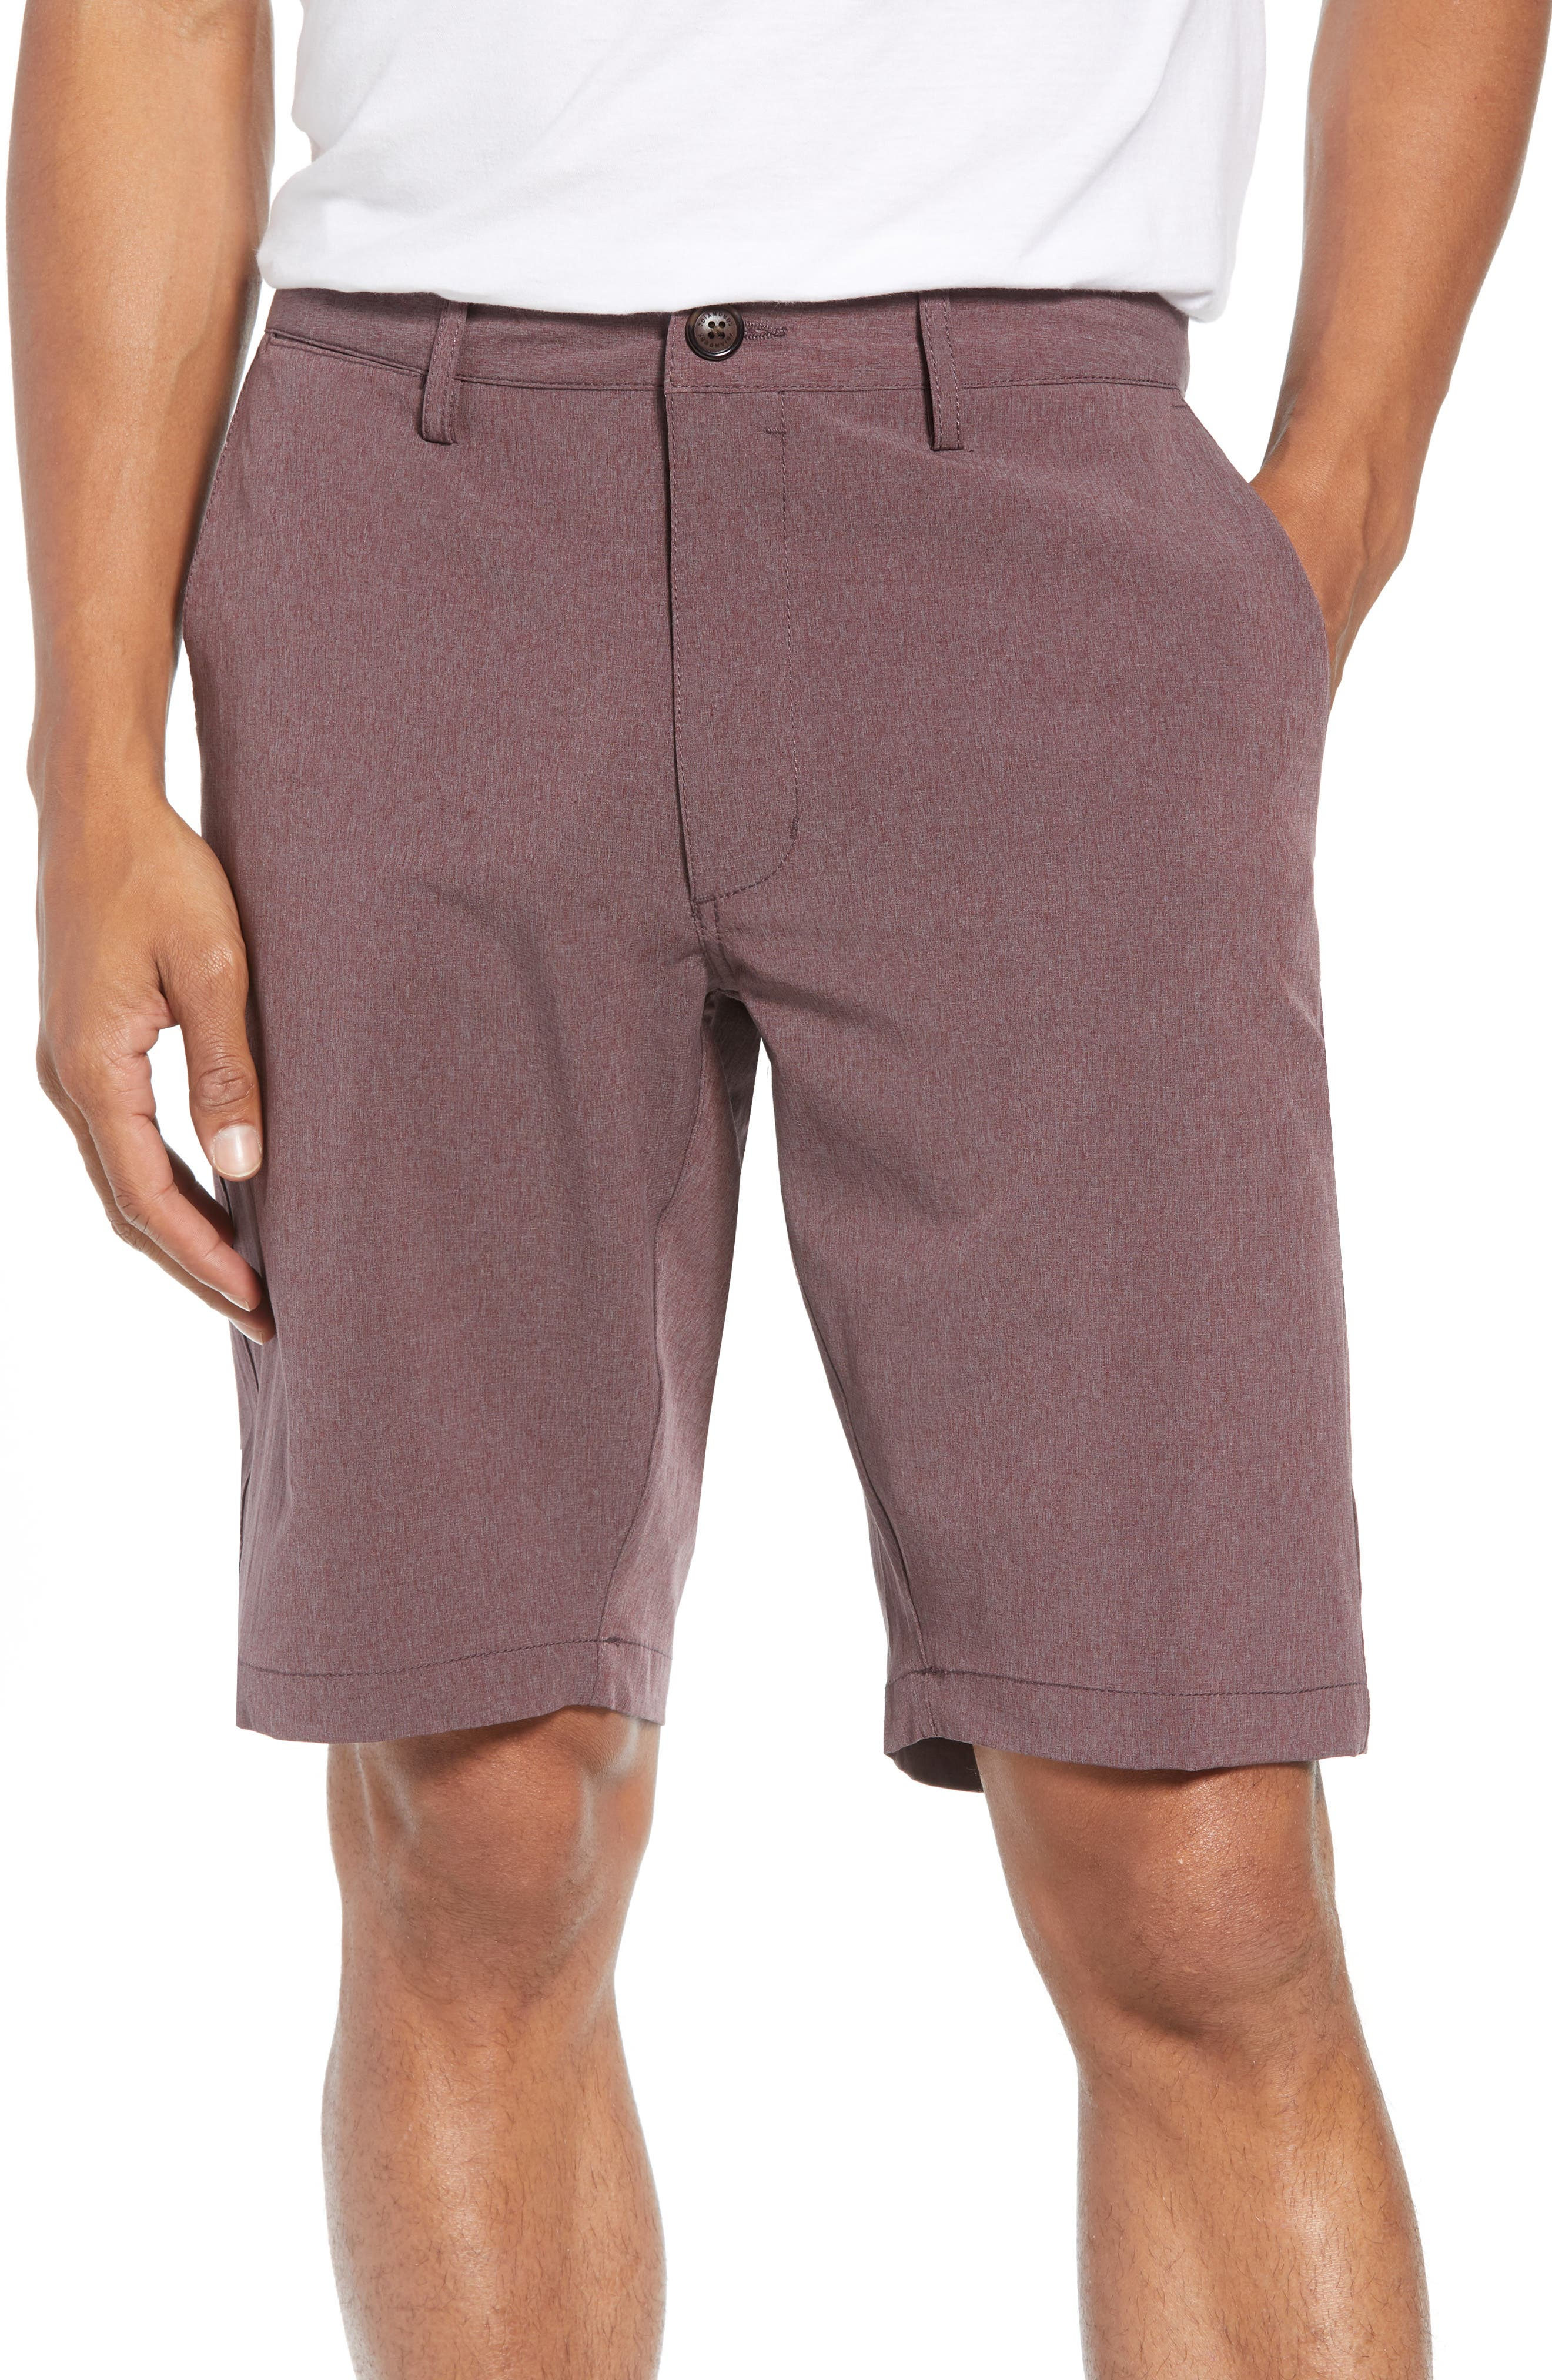 Adrenaline Stretch Shorts,                         Main,                         color, Berry